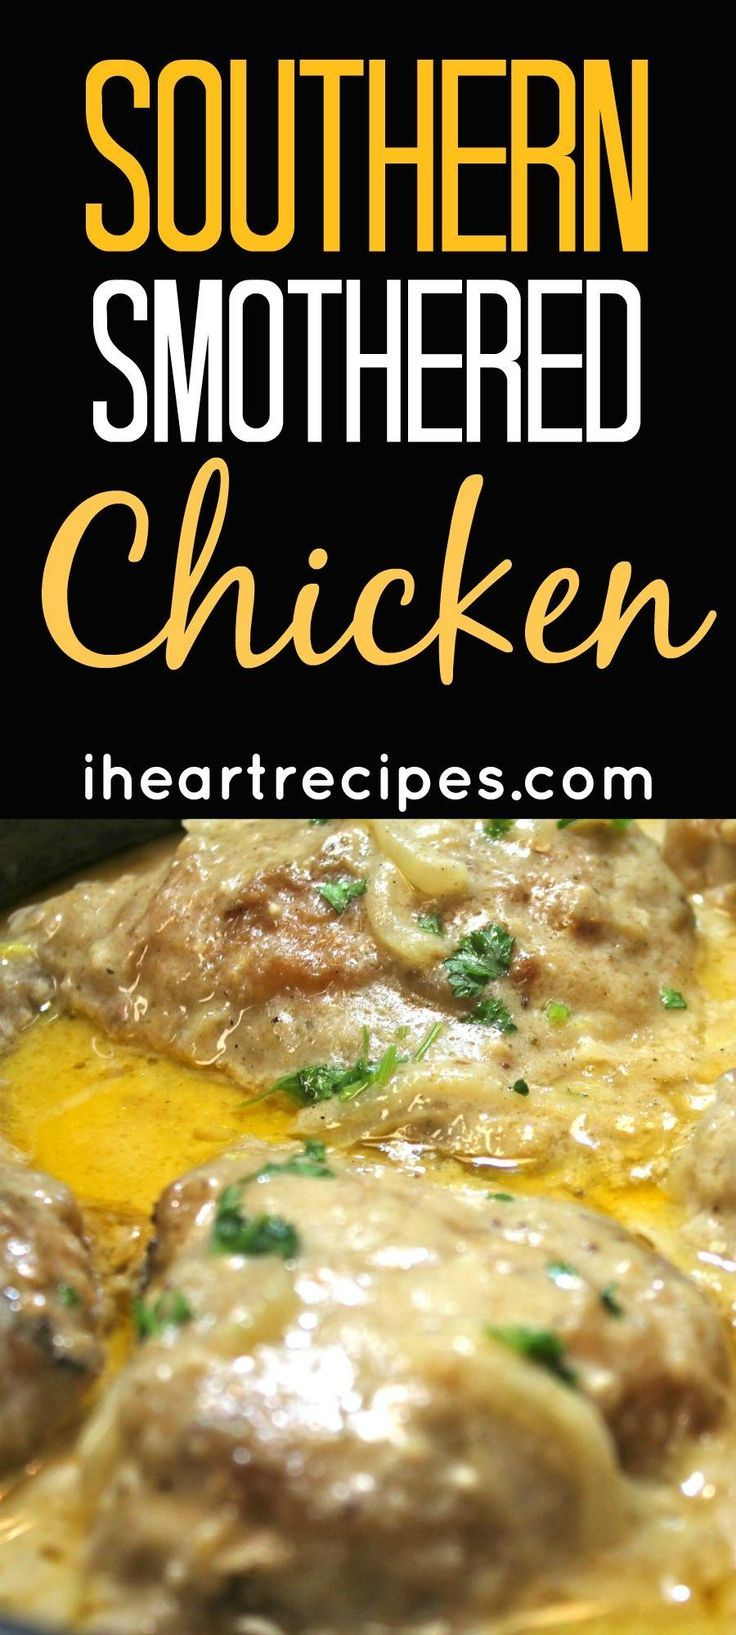 I'm going to show you how to make the best Southern Smothered Chicken. We are going to brown the chicken, and then cook the chicken in a homemade creamy gravy that will also go great over mashed potatoes or rice!